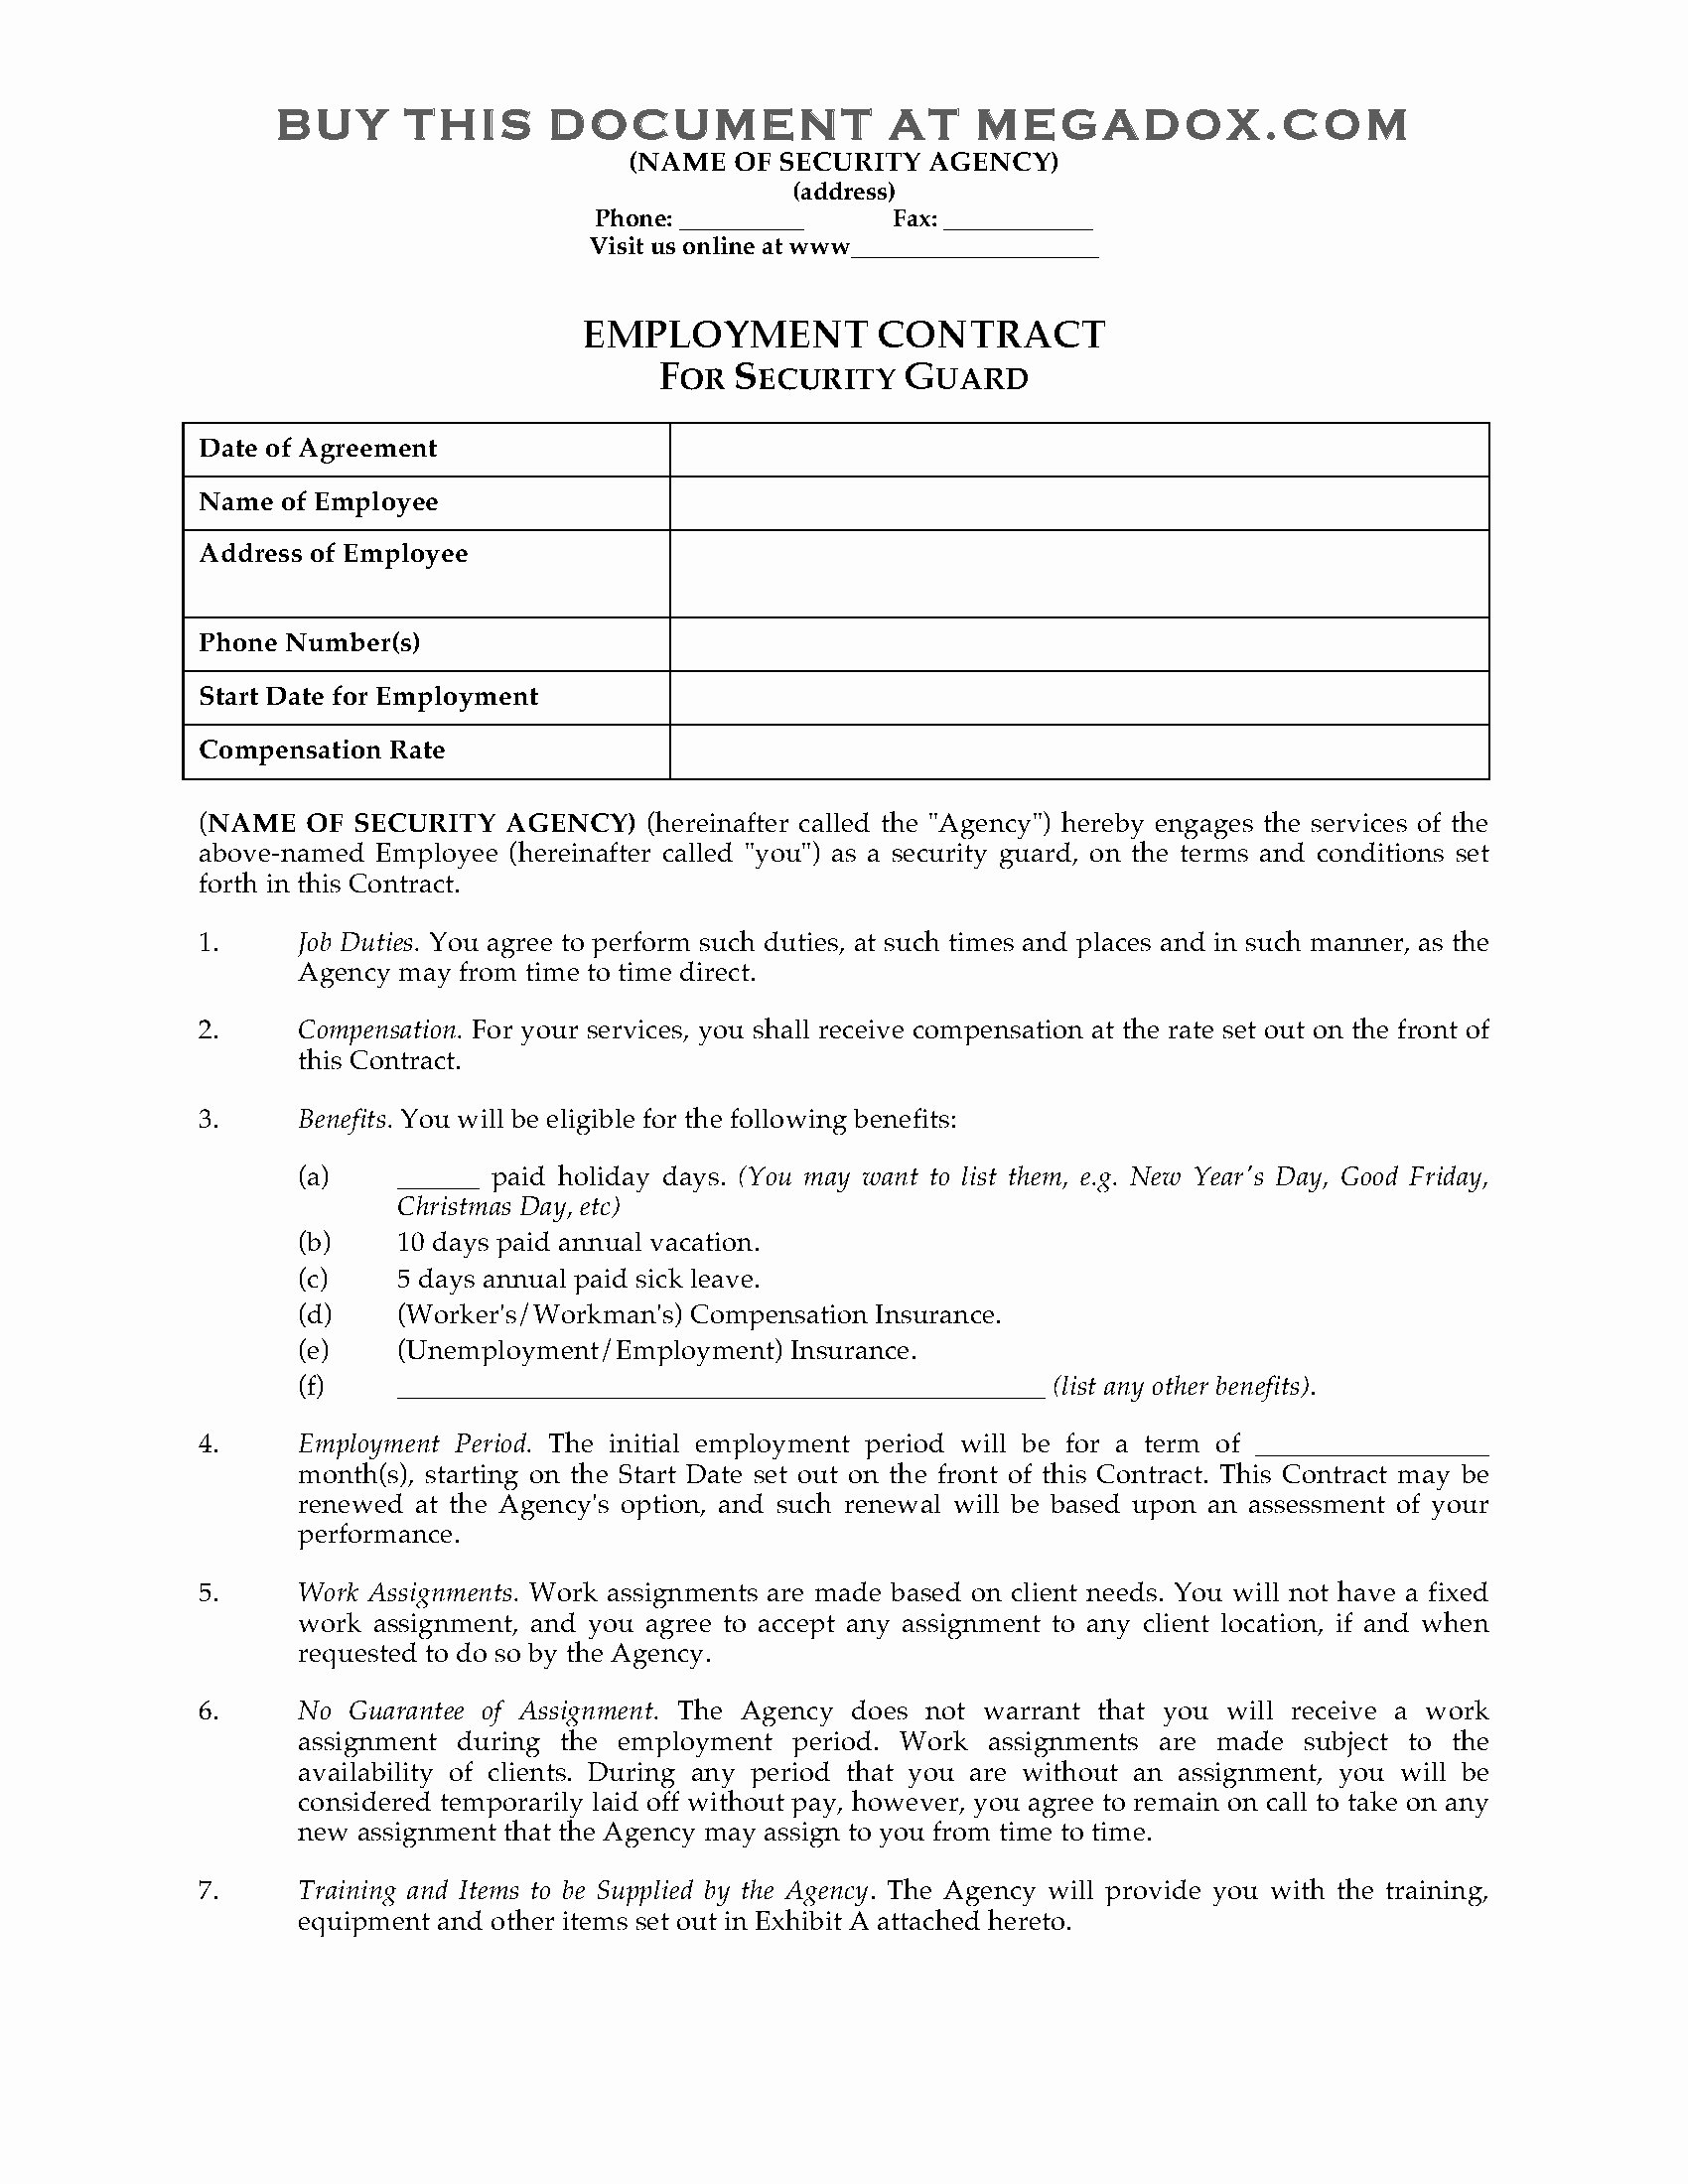 Security Guard Contract Template Fresh Security Guard Employment Contract